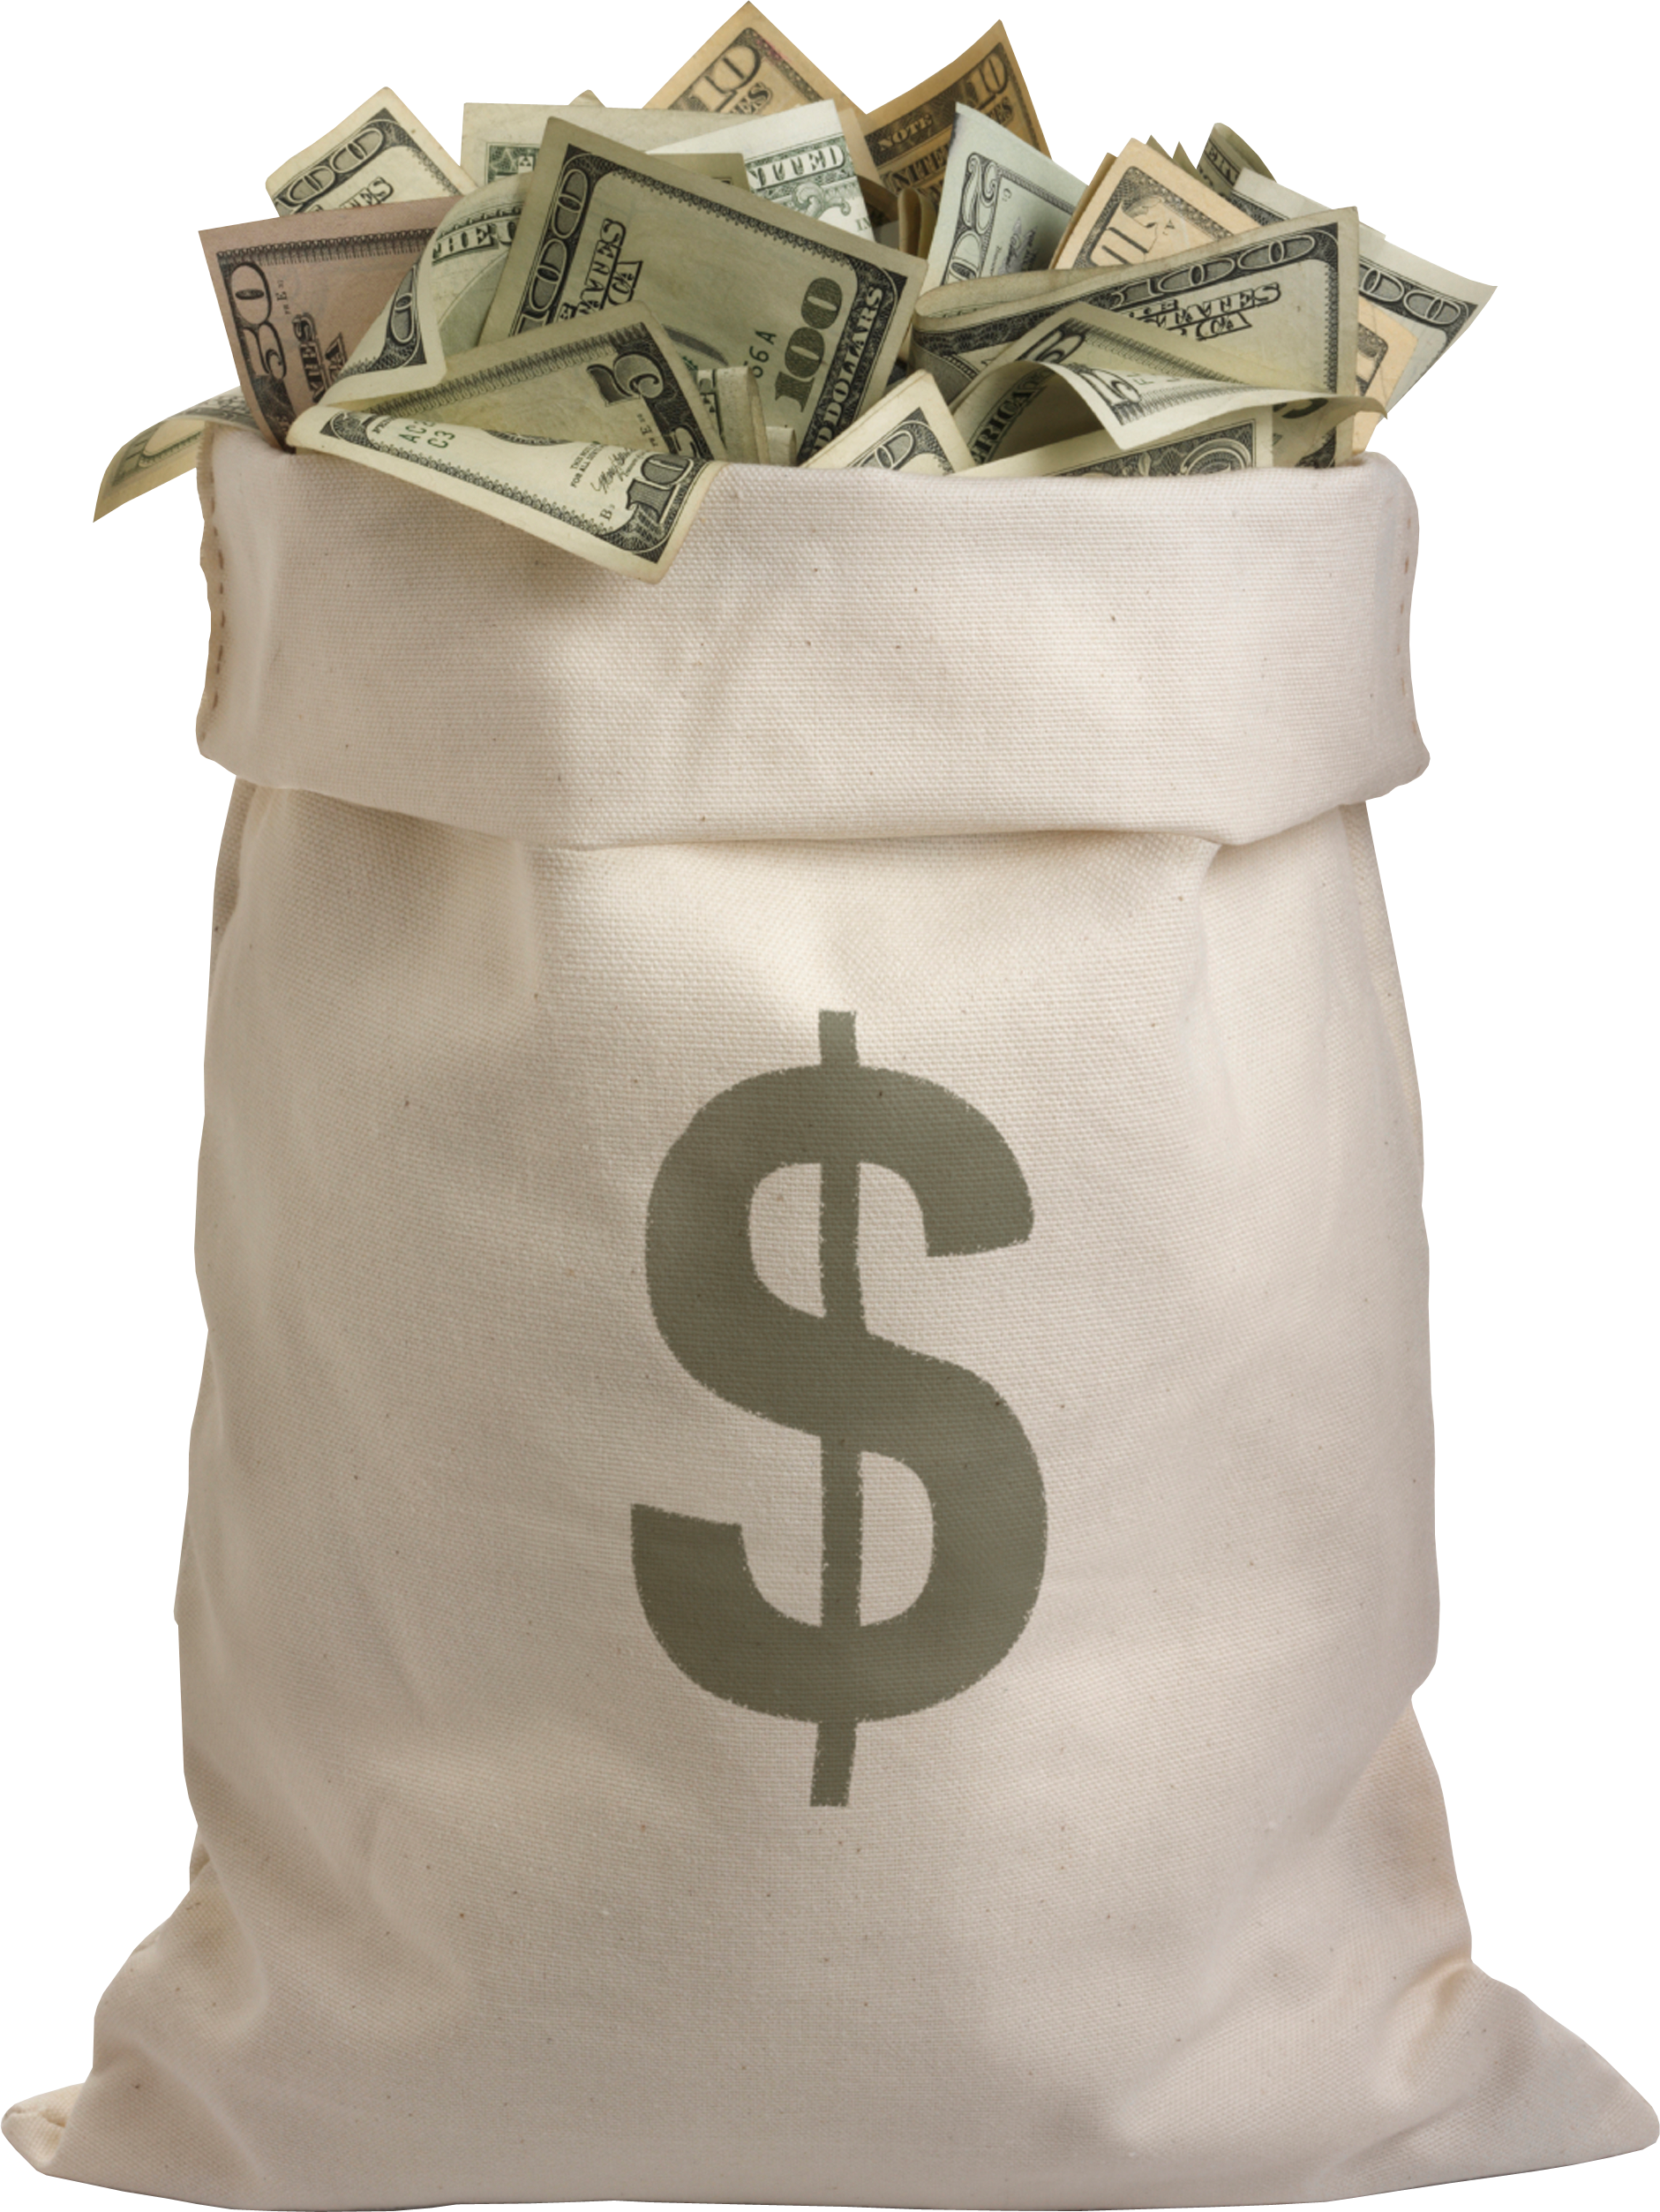 Png money. Image free pictures download